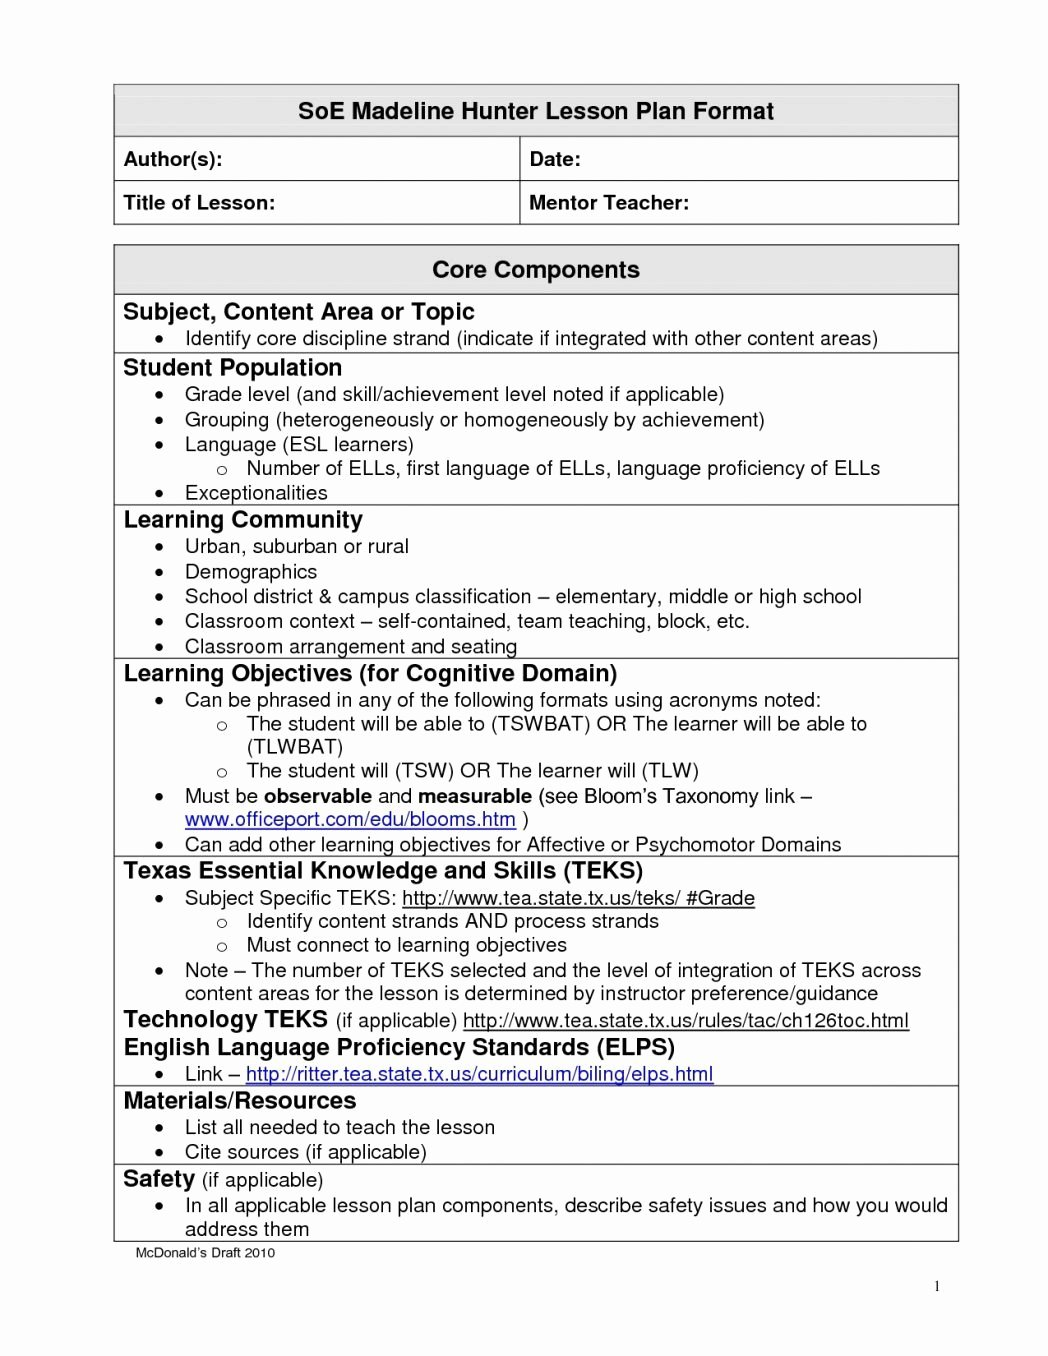 Math Lesson Plan Template Awesome Edtpa Math Lesson Plan Template – Best Lesson Plan